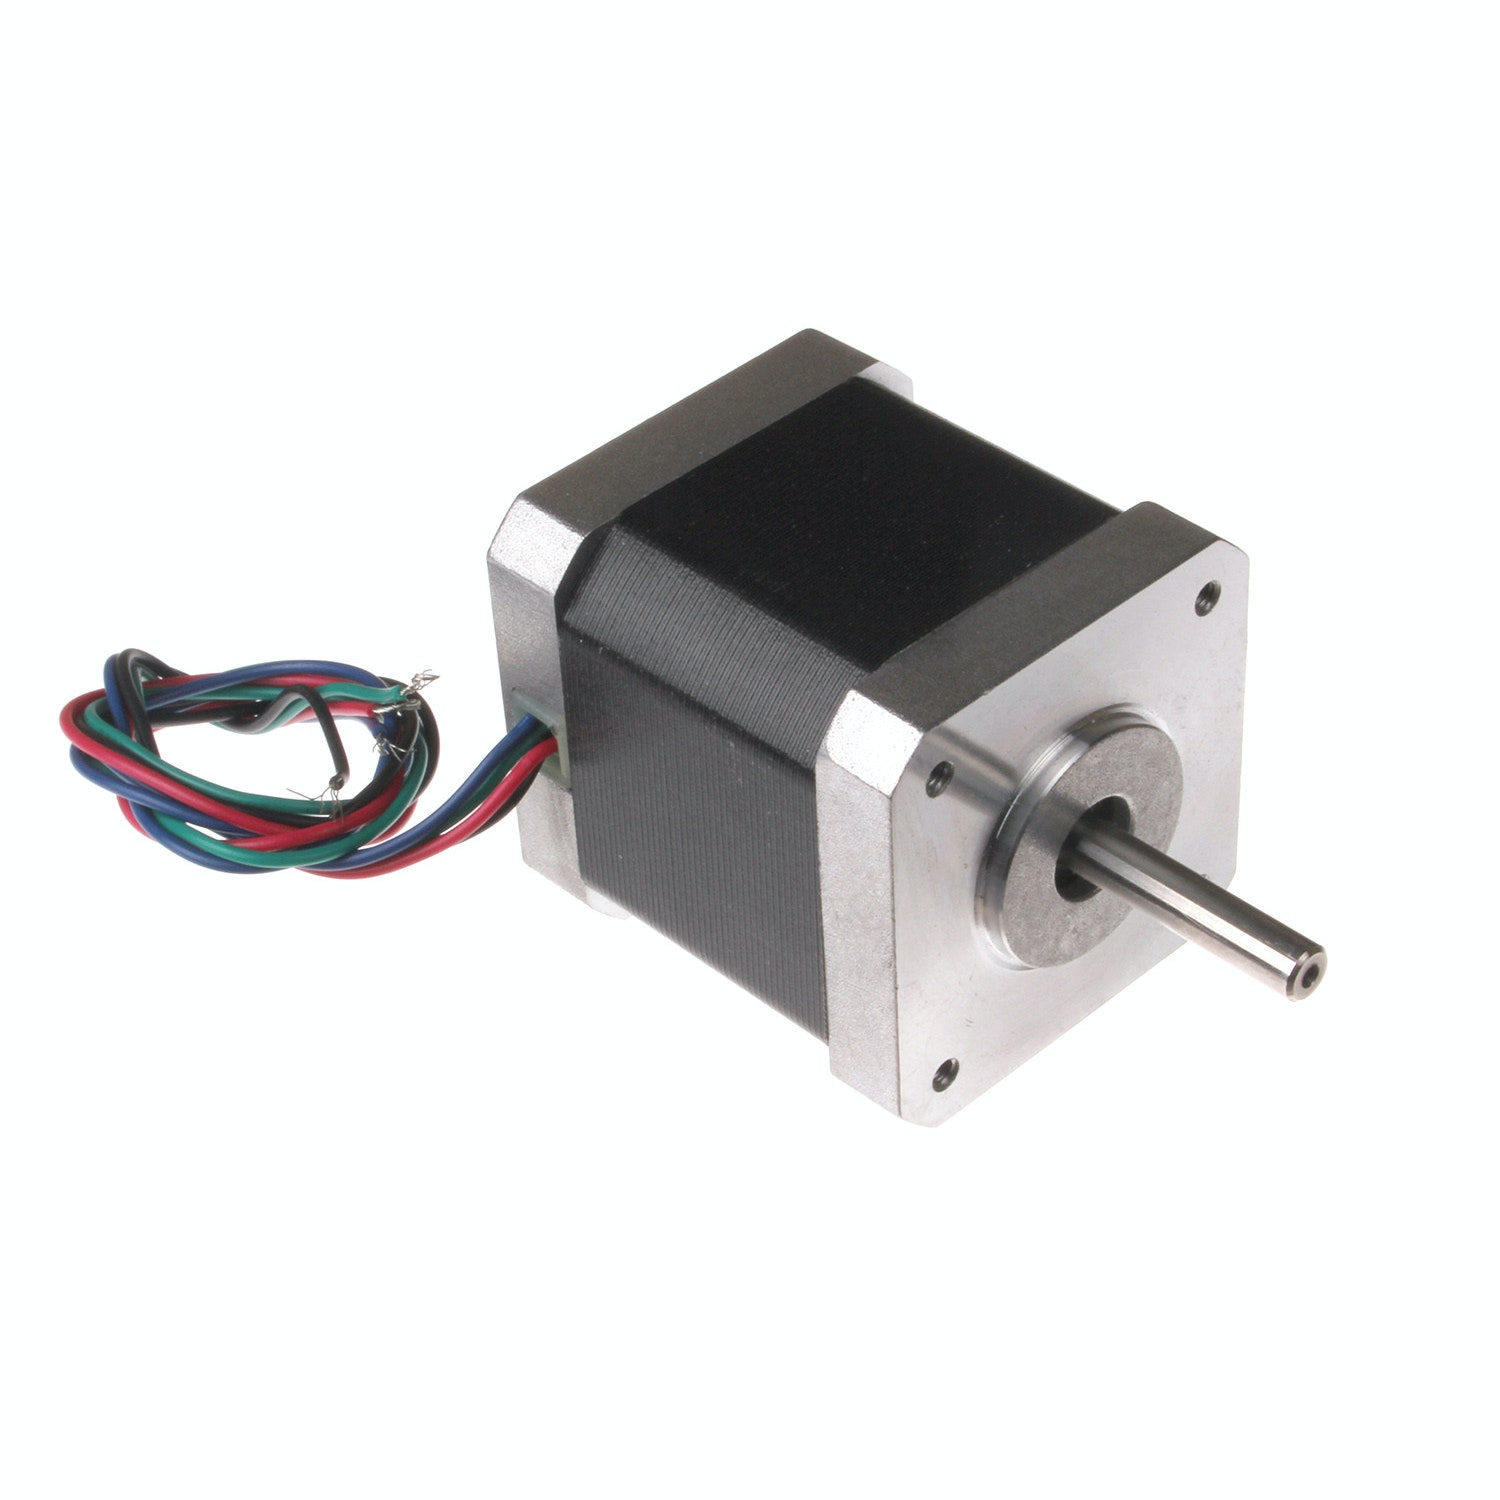 Nema-17 Stepper Motor Four Pack